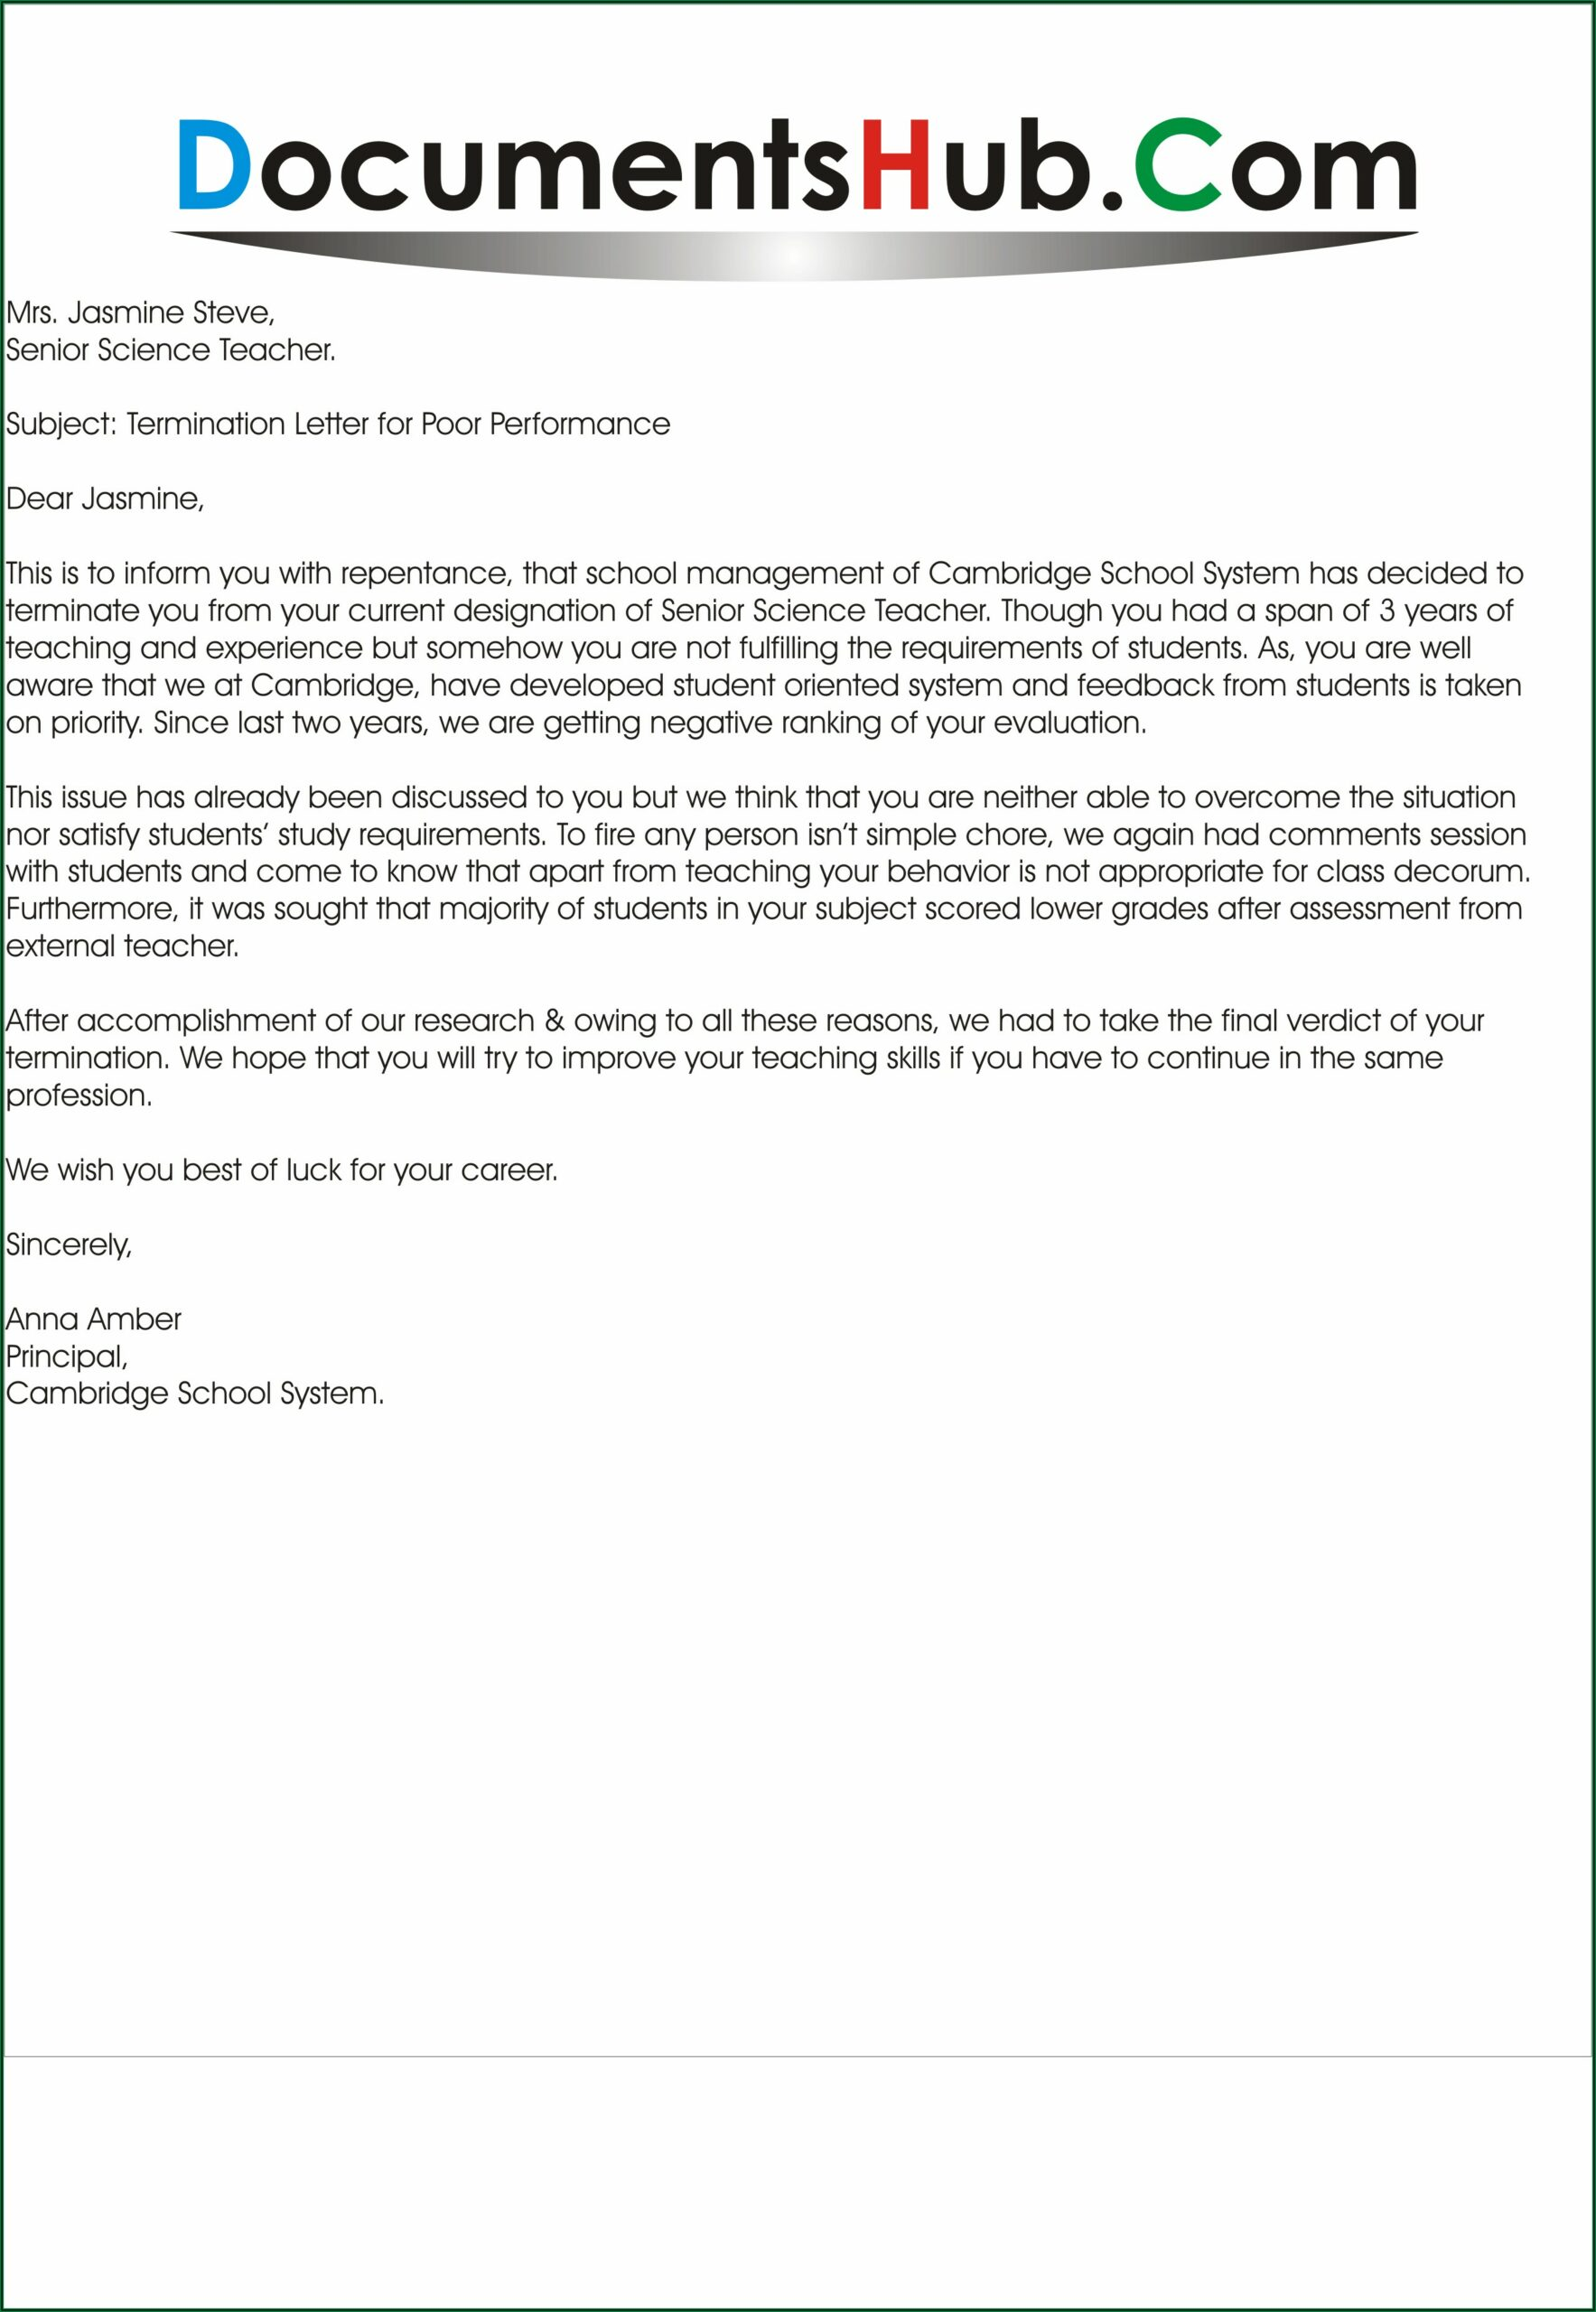 Sample Letter Of Termination Of Employment Contract Due To Poor Performance